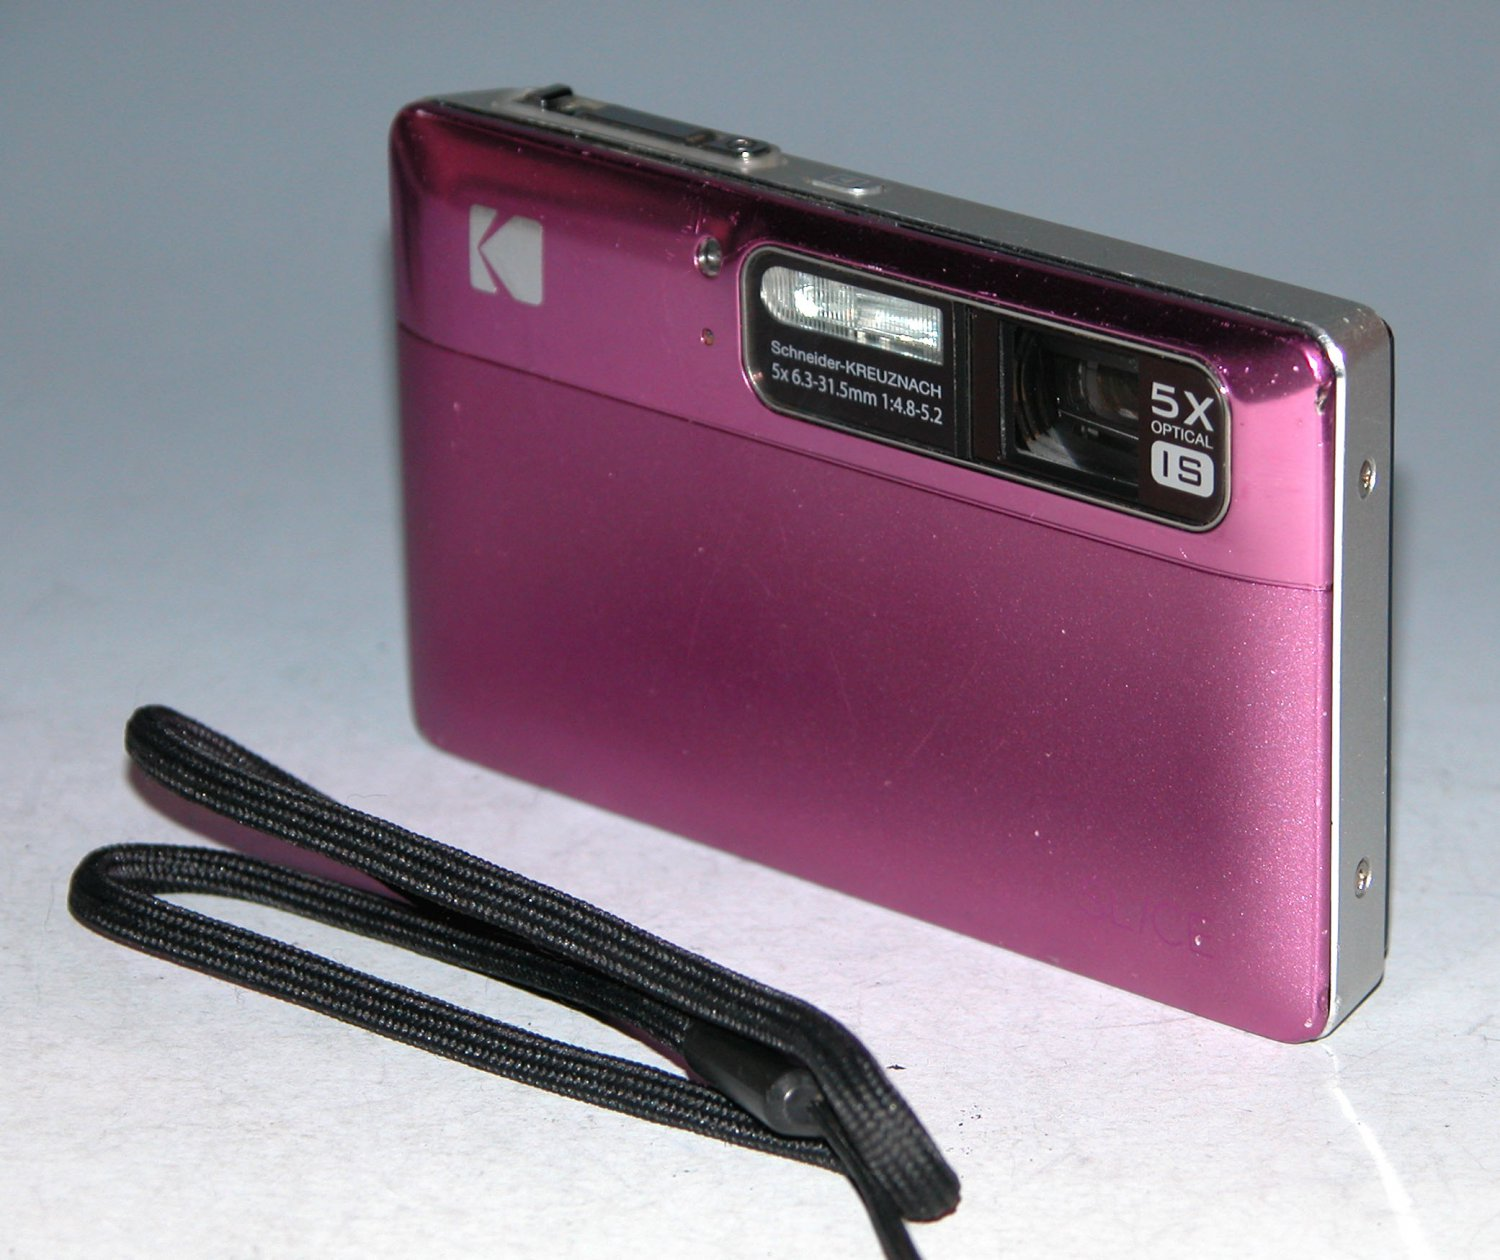 Kodak EasyShare SLICE R502 14.0MP Digital Camera - Radish #2304